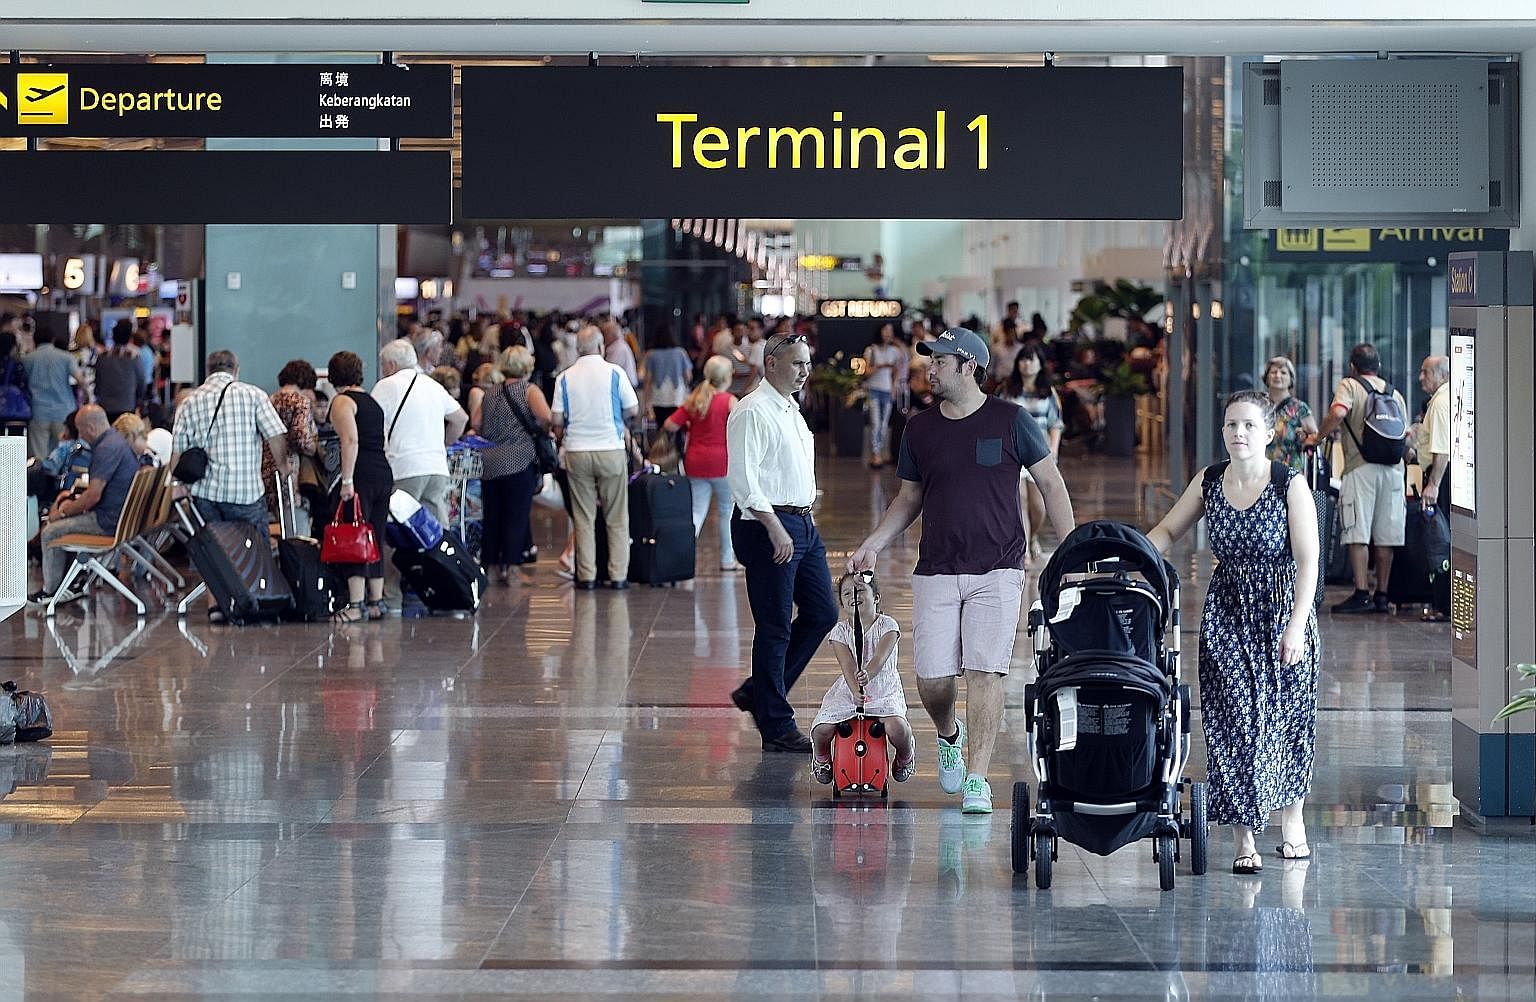 The increase in airport charges to help fund the development of the Changi East airport expansion project has been criticised by some airlines and industry groups.